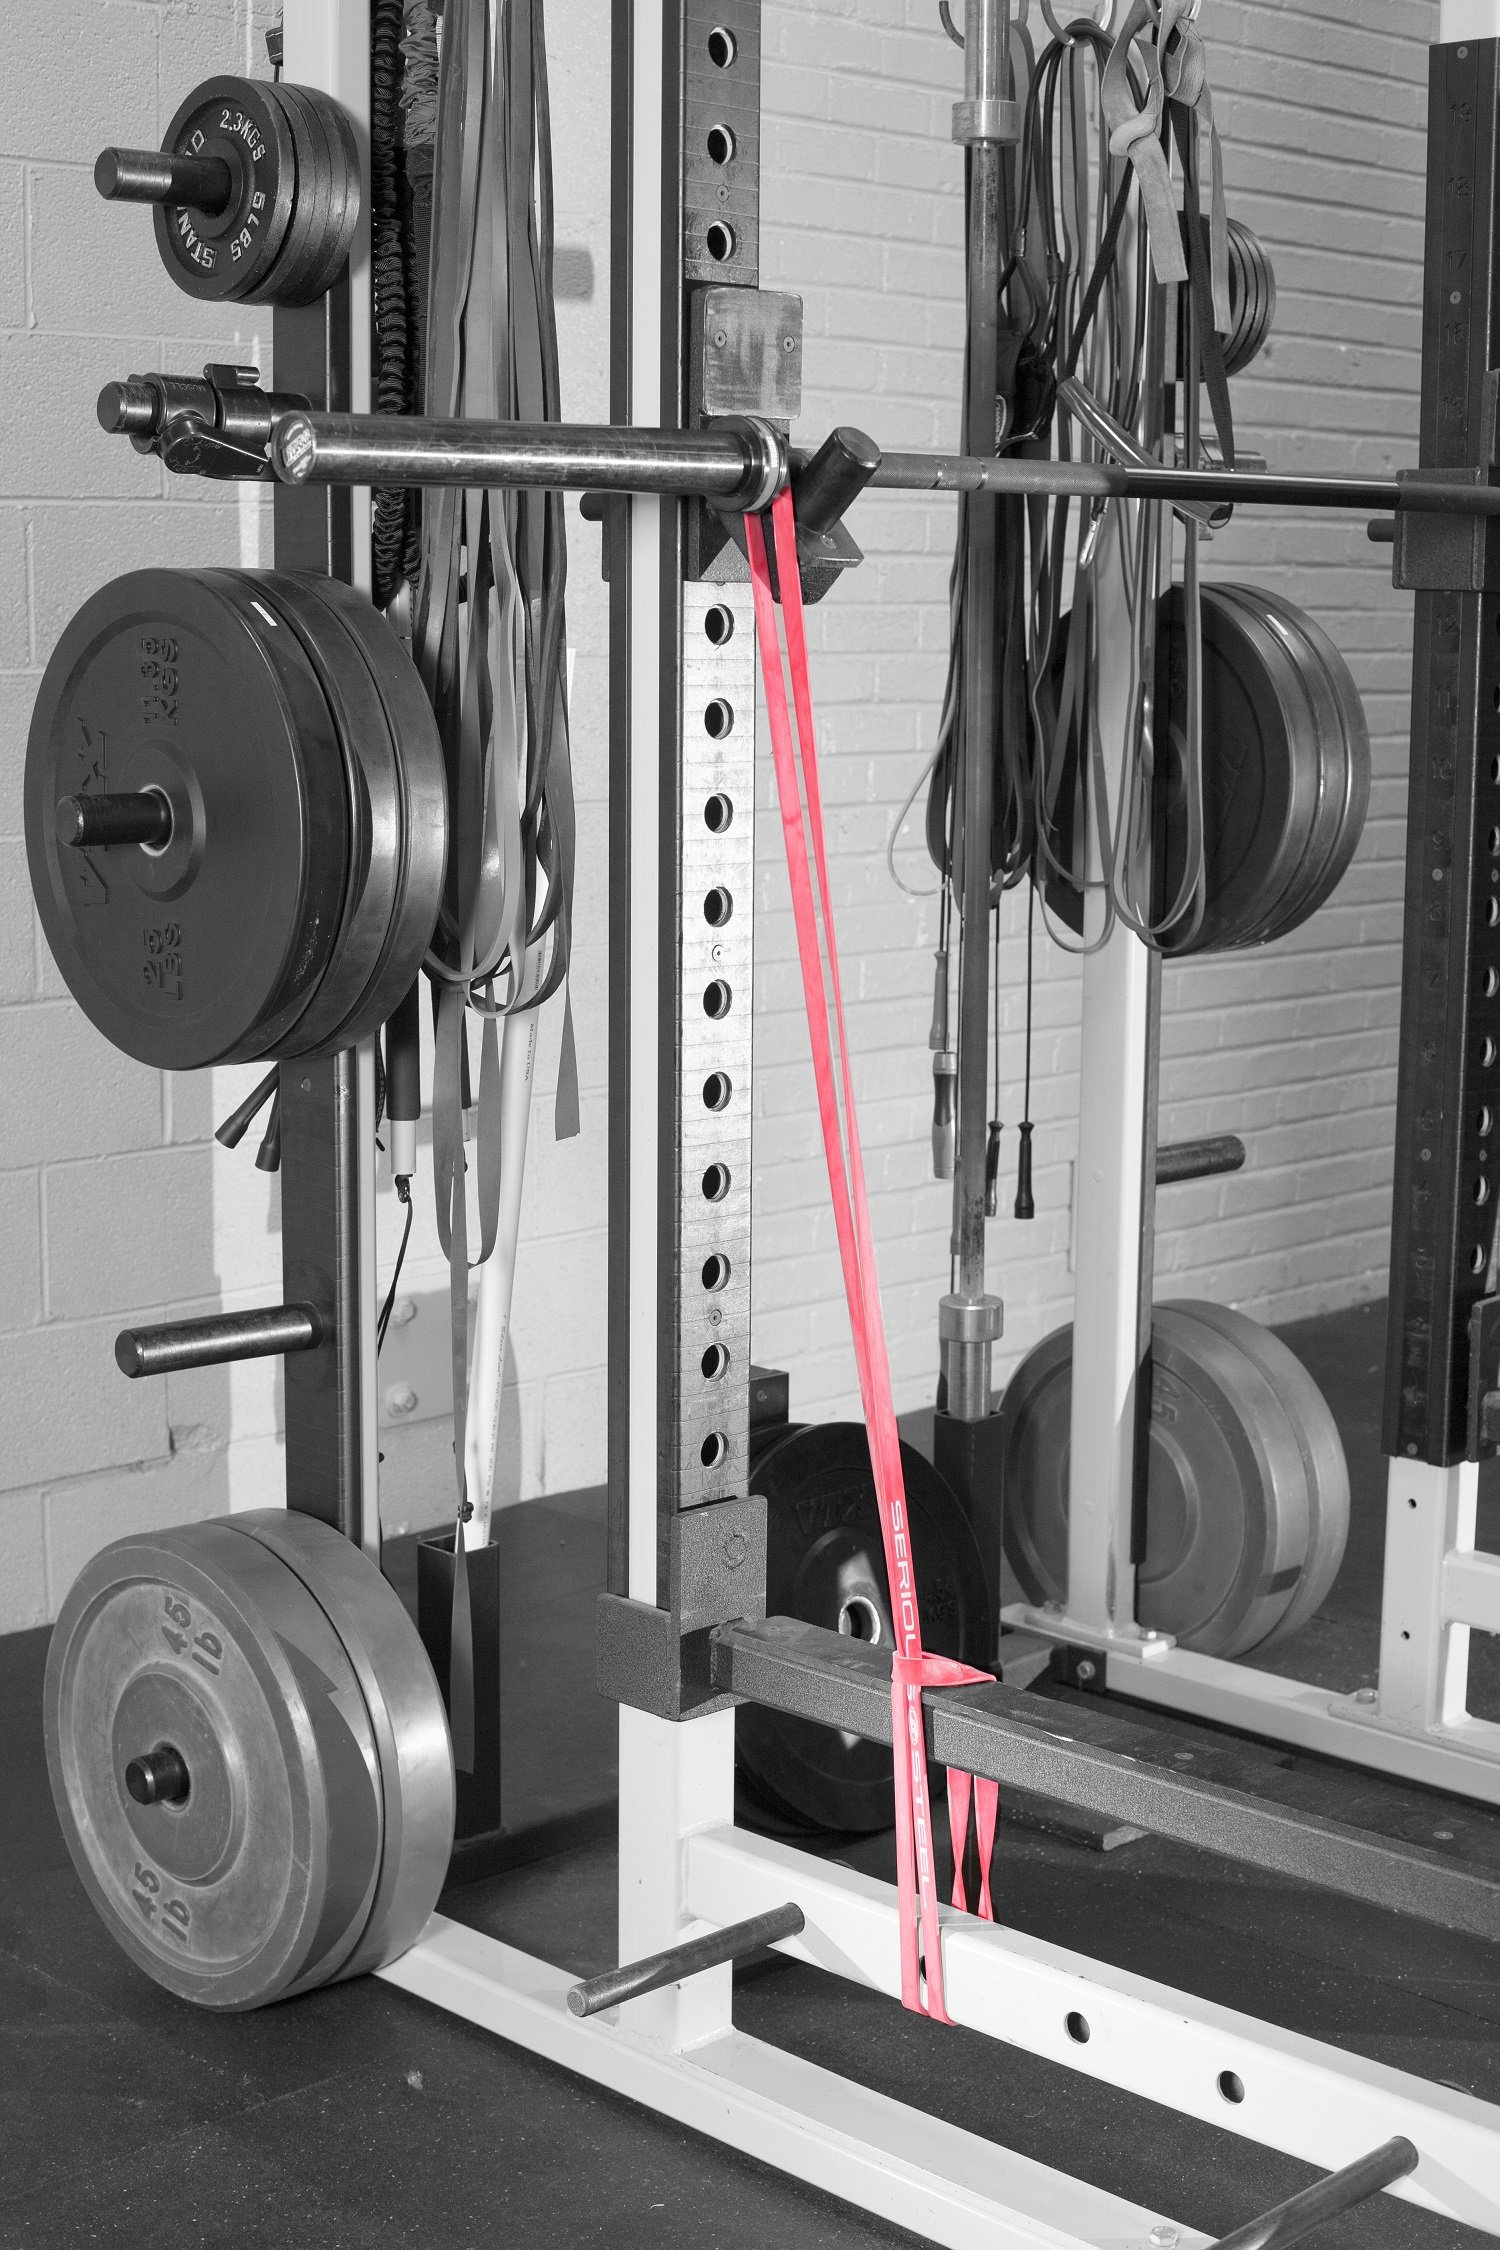 Serious Steel Fitness Red - #2 Monster Mini Pull-up Assist & Resistance Band (Size: 13/16'' x 4.5mm Resistance: 10-50lbs) by Serious Steel Fitness (Image #9)